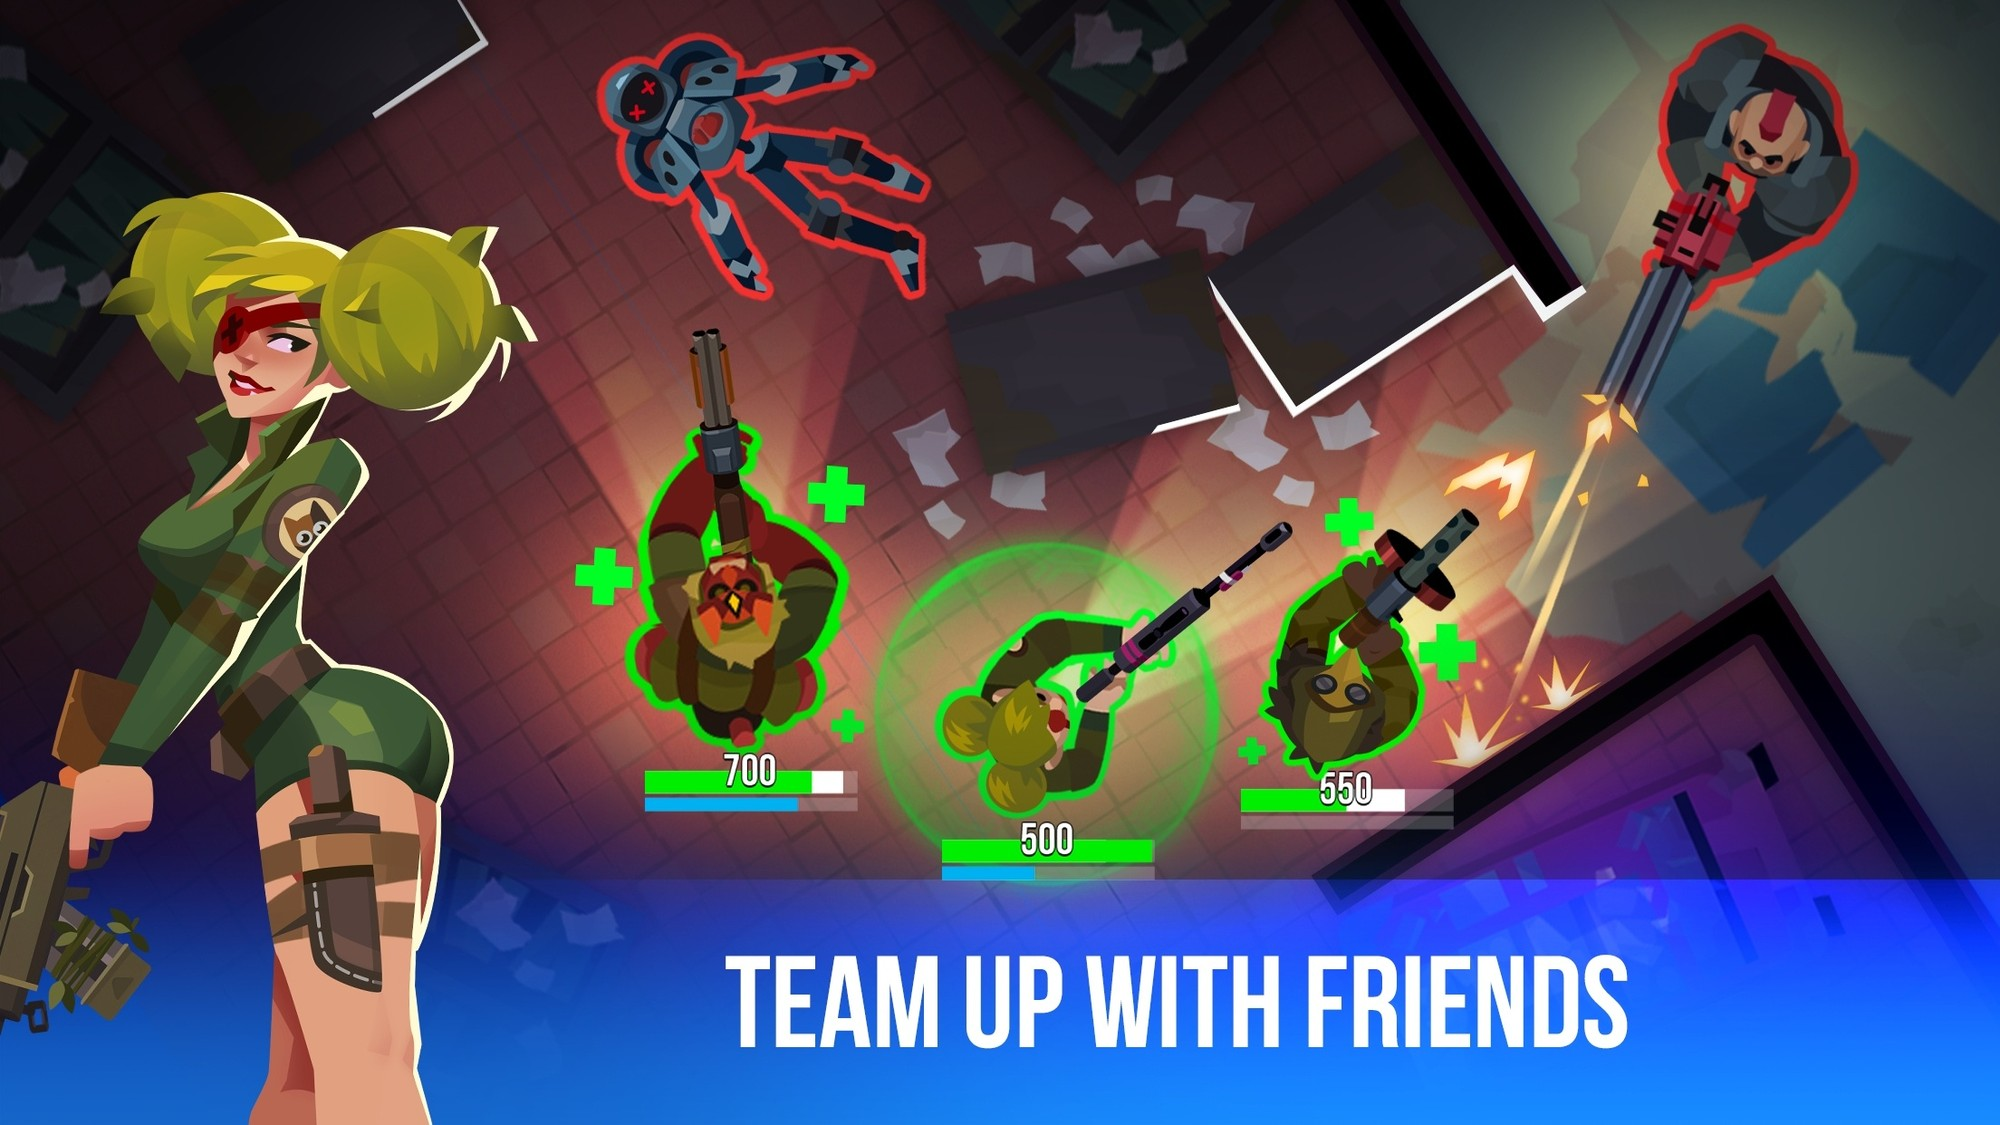 Team up with friends